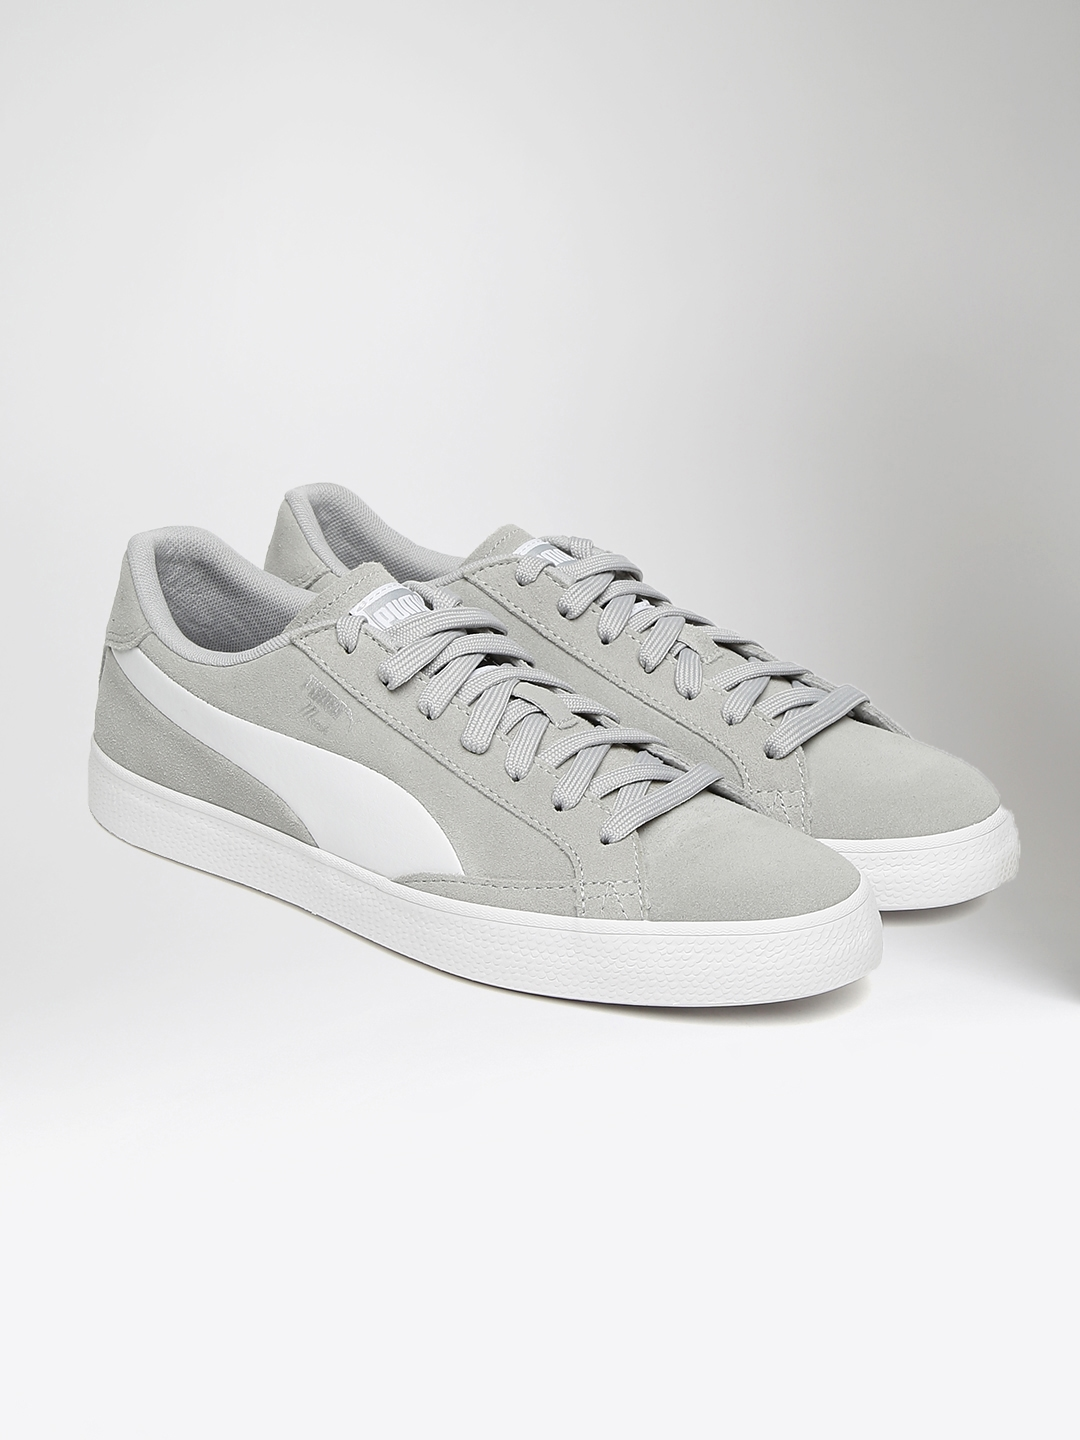 Buy Puma Men Grey   White Match Vulc 2 Sneakers - Casual Shoes for ... 88fac3db9